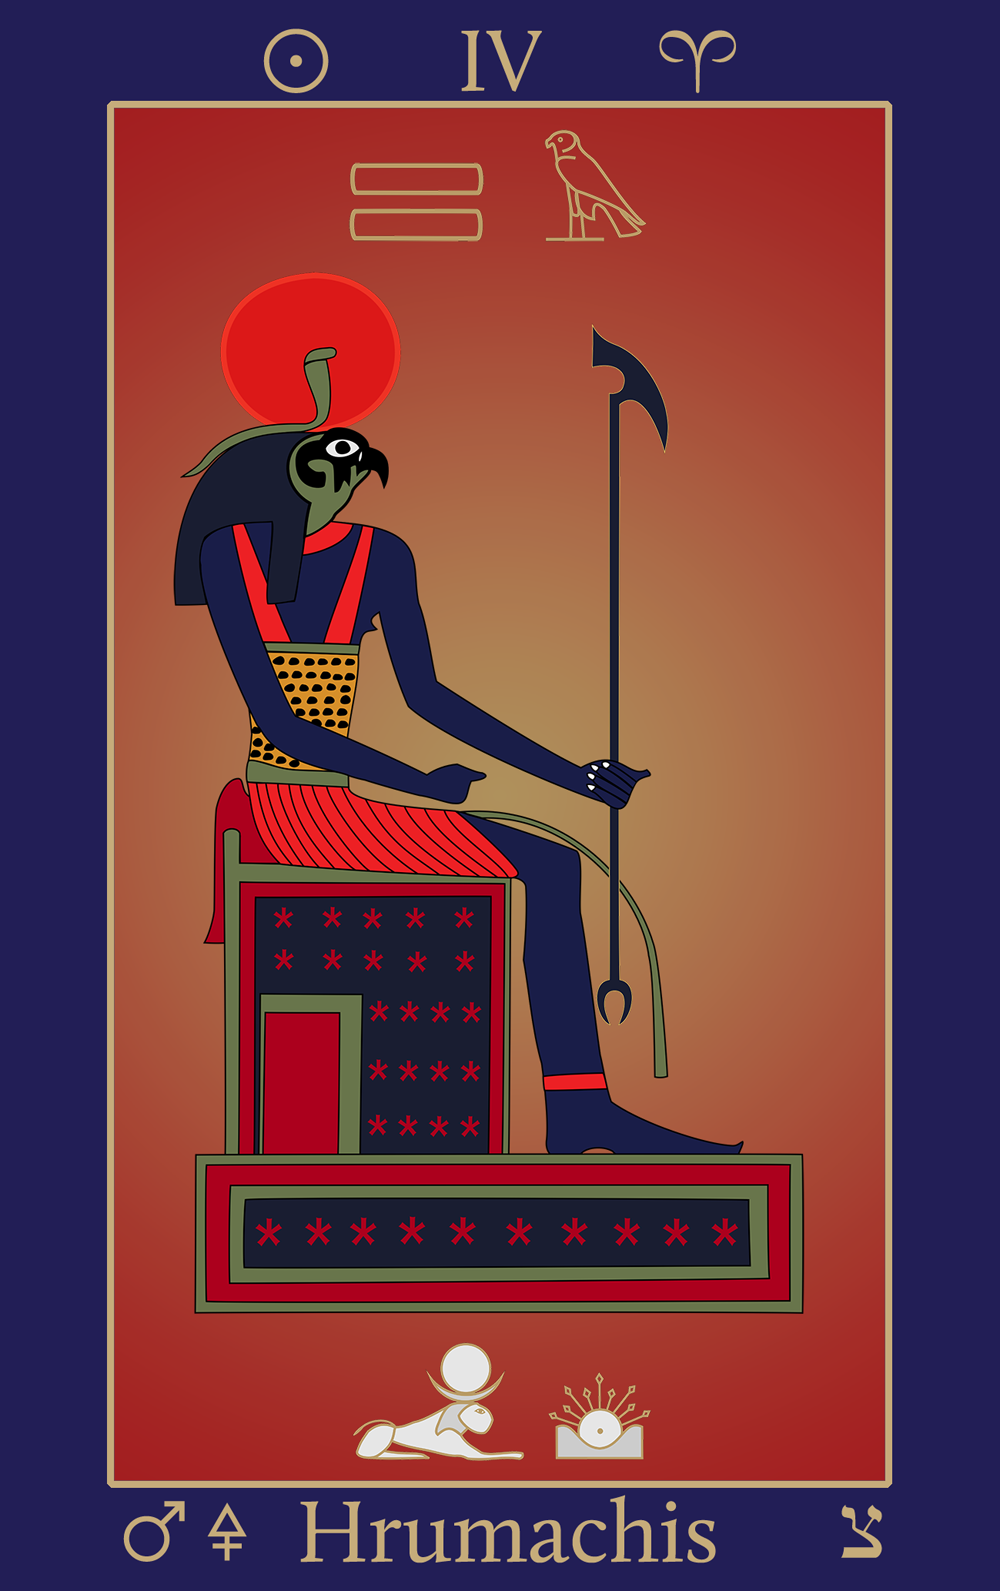 Aries Equinox: Egyptian Tarot of Thelema Hrumachis IV